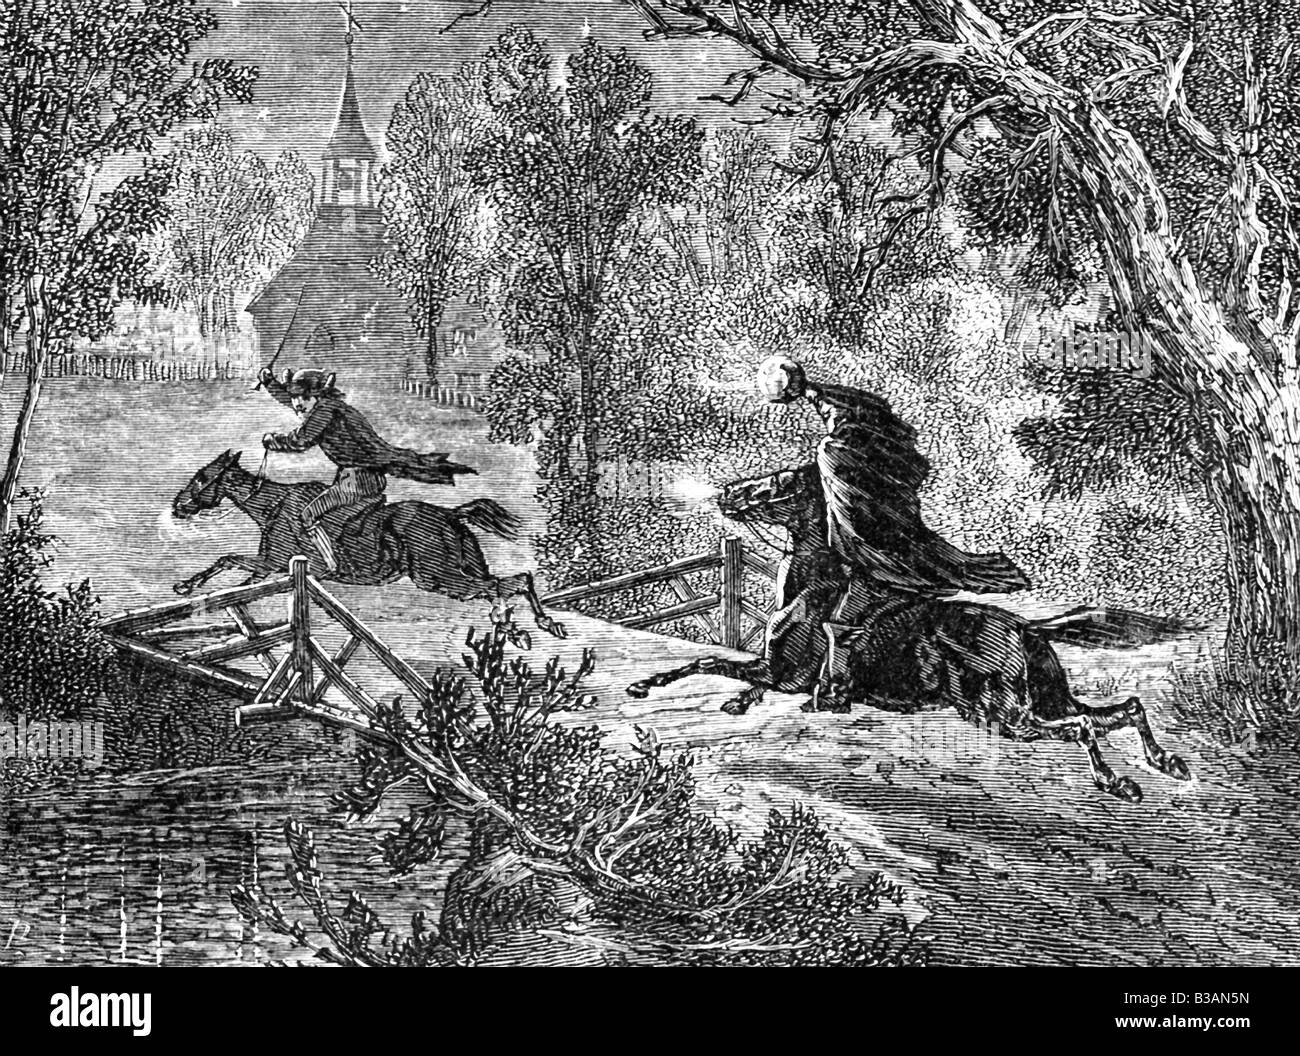 Headless Horseman High Resolution Stock Photography And Images Alamy